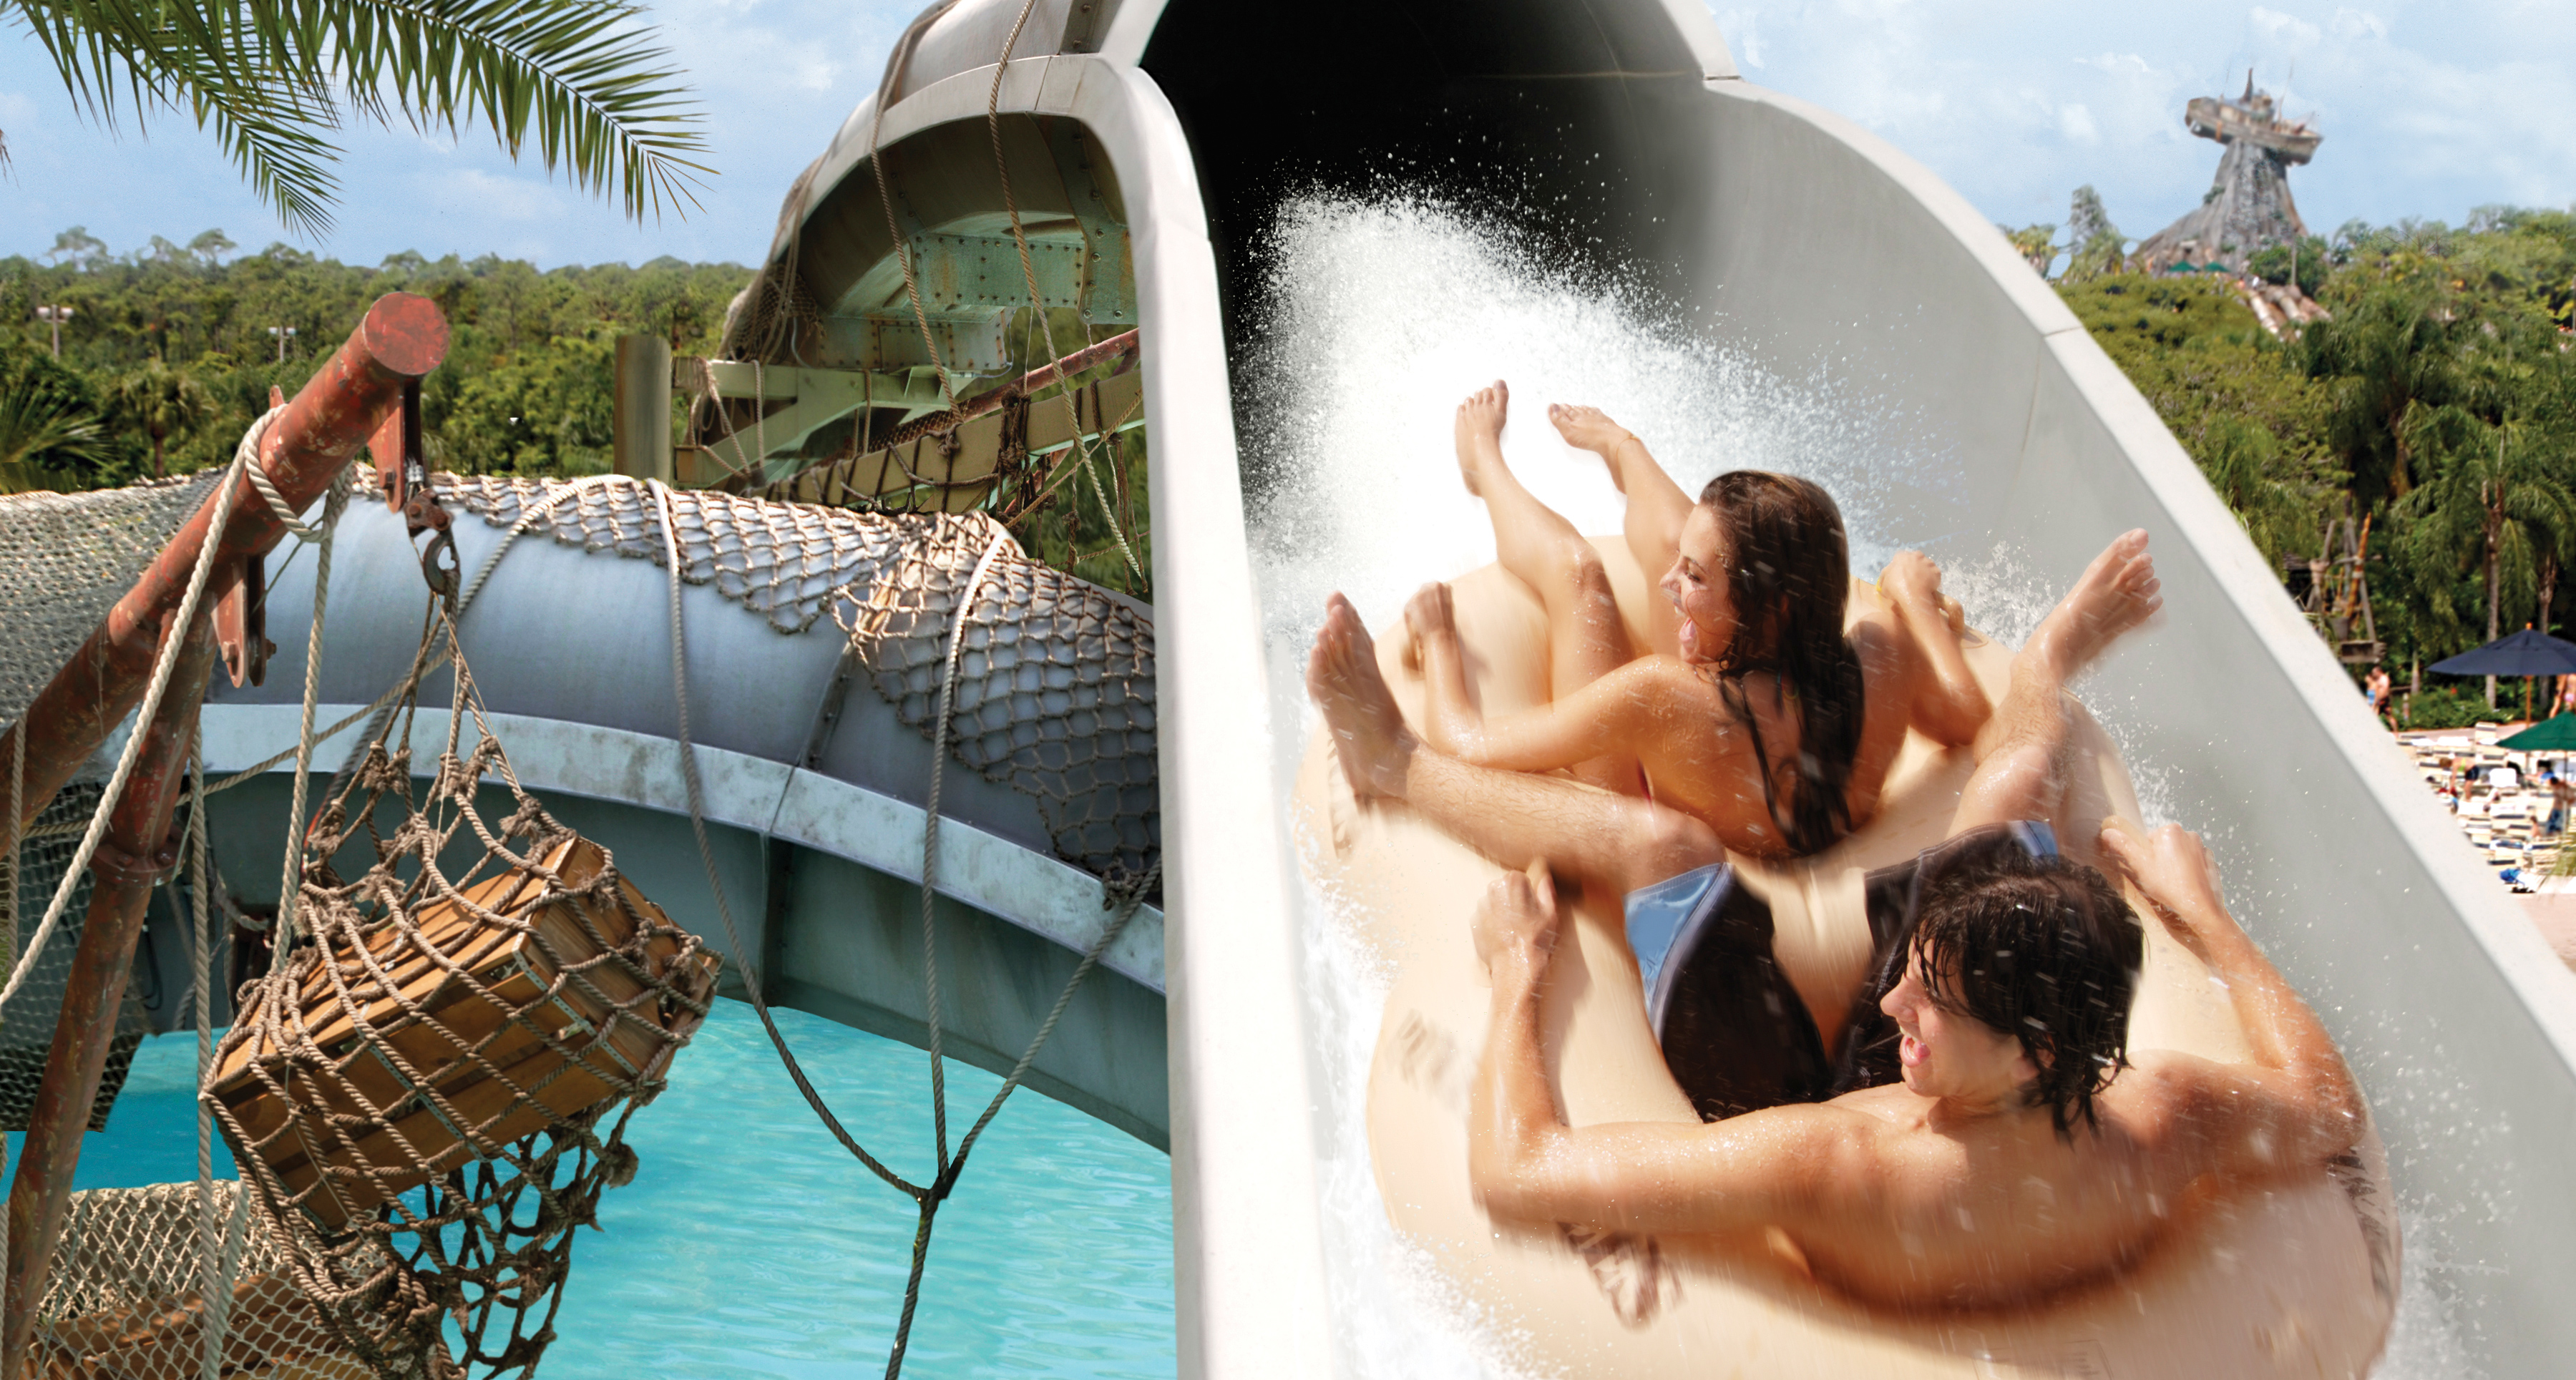 Guests hold on tightly while rapidly sliding down the roller coaster-like raft ride Crush 'n' Gusher